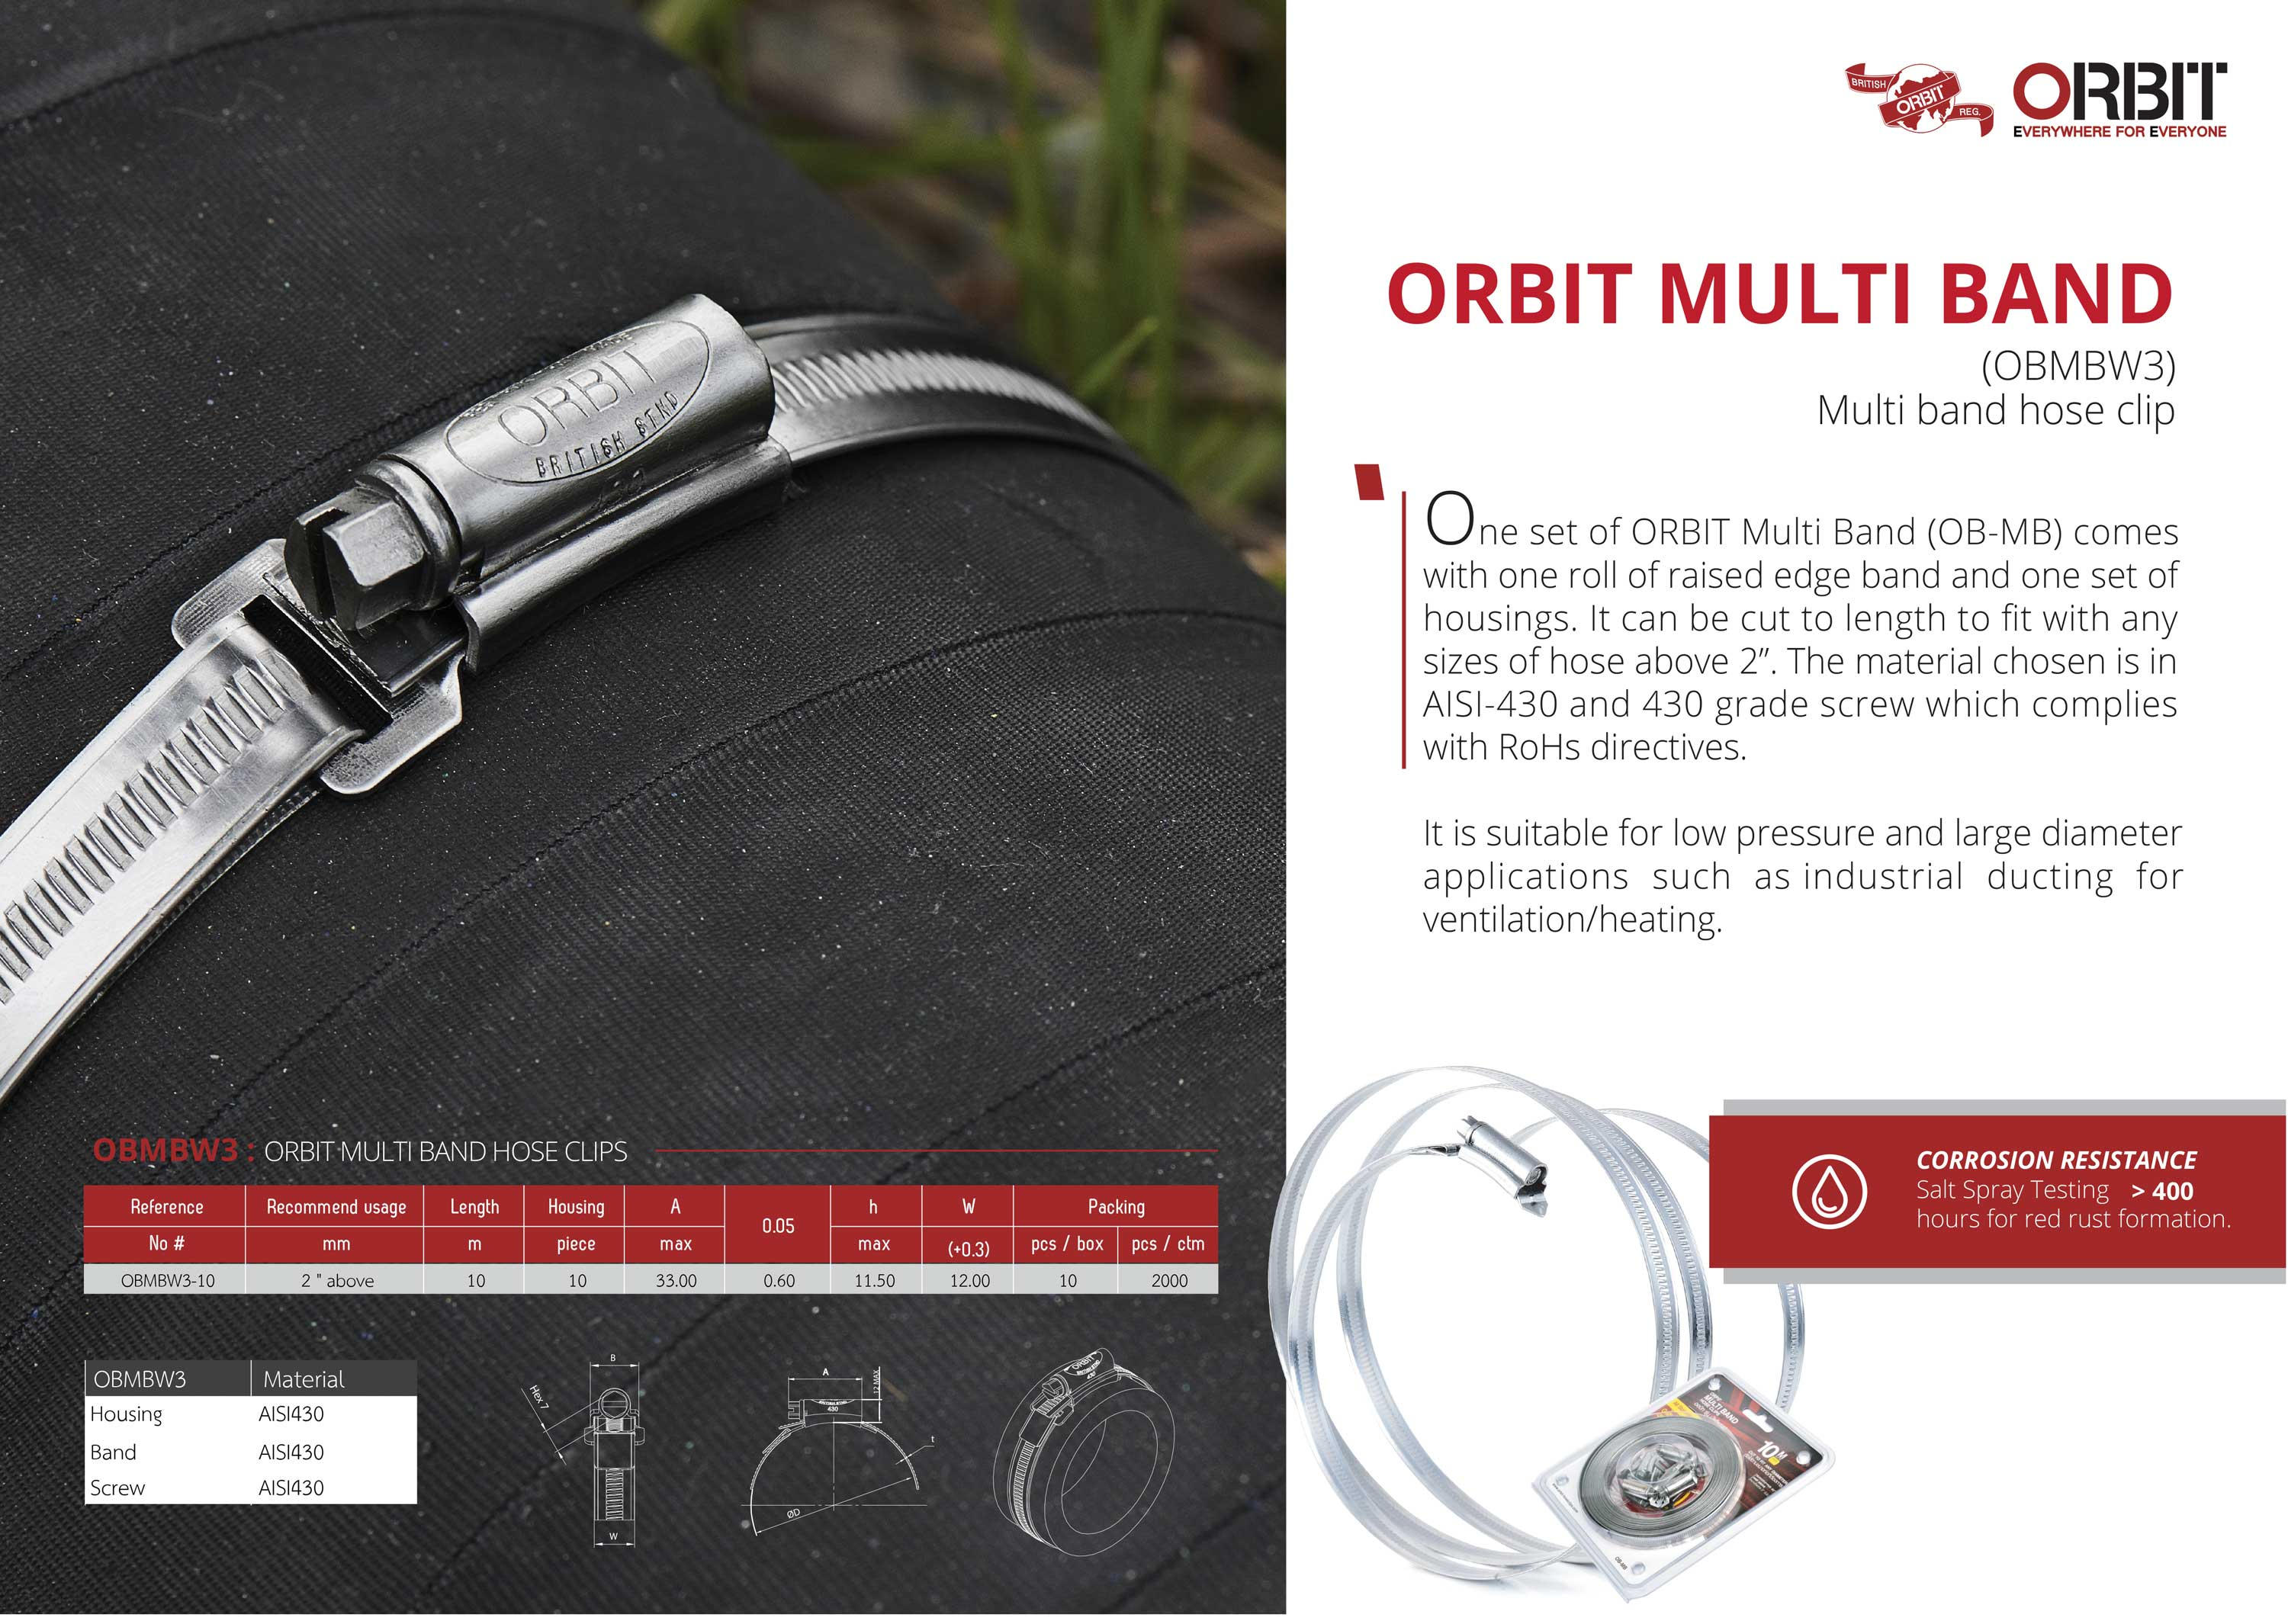 ORBIT MULTI BAND HOSE CLIPS